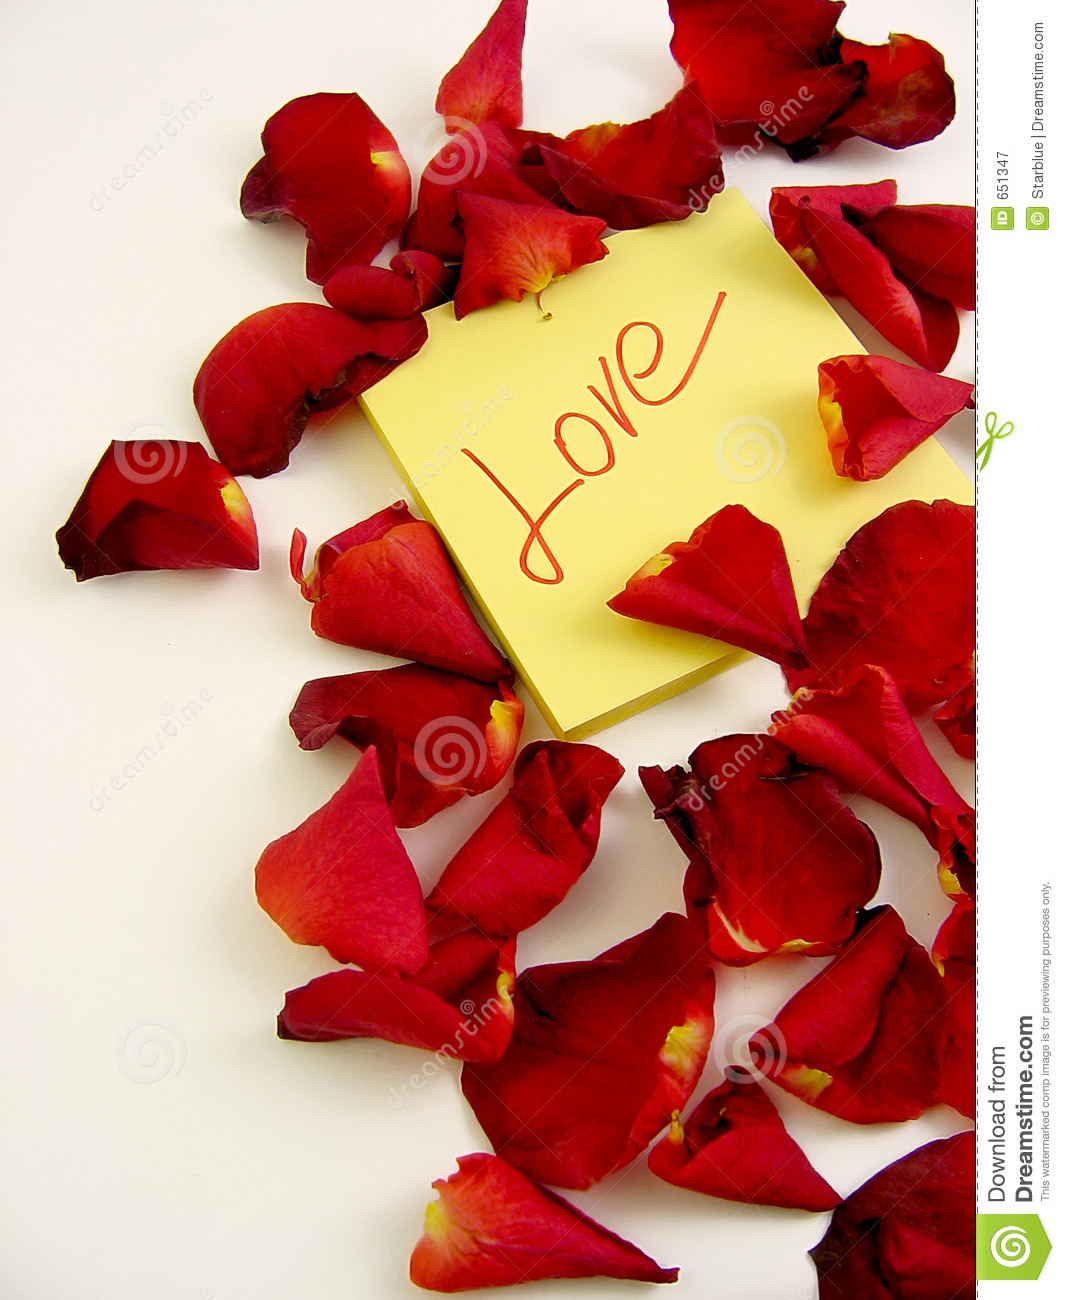 Rose Petals With Love Message Stock Image - Image of romance, rose